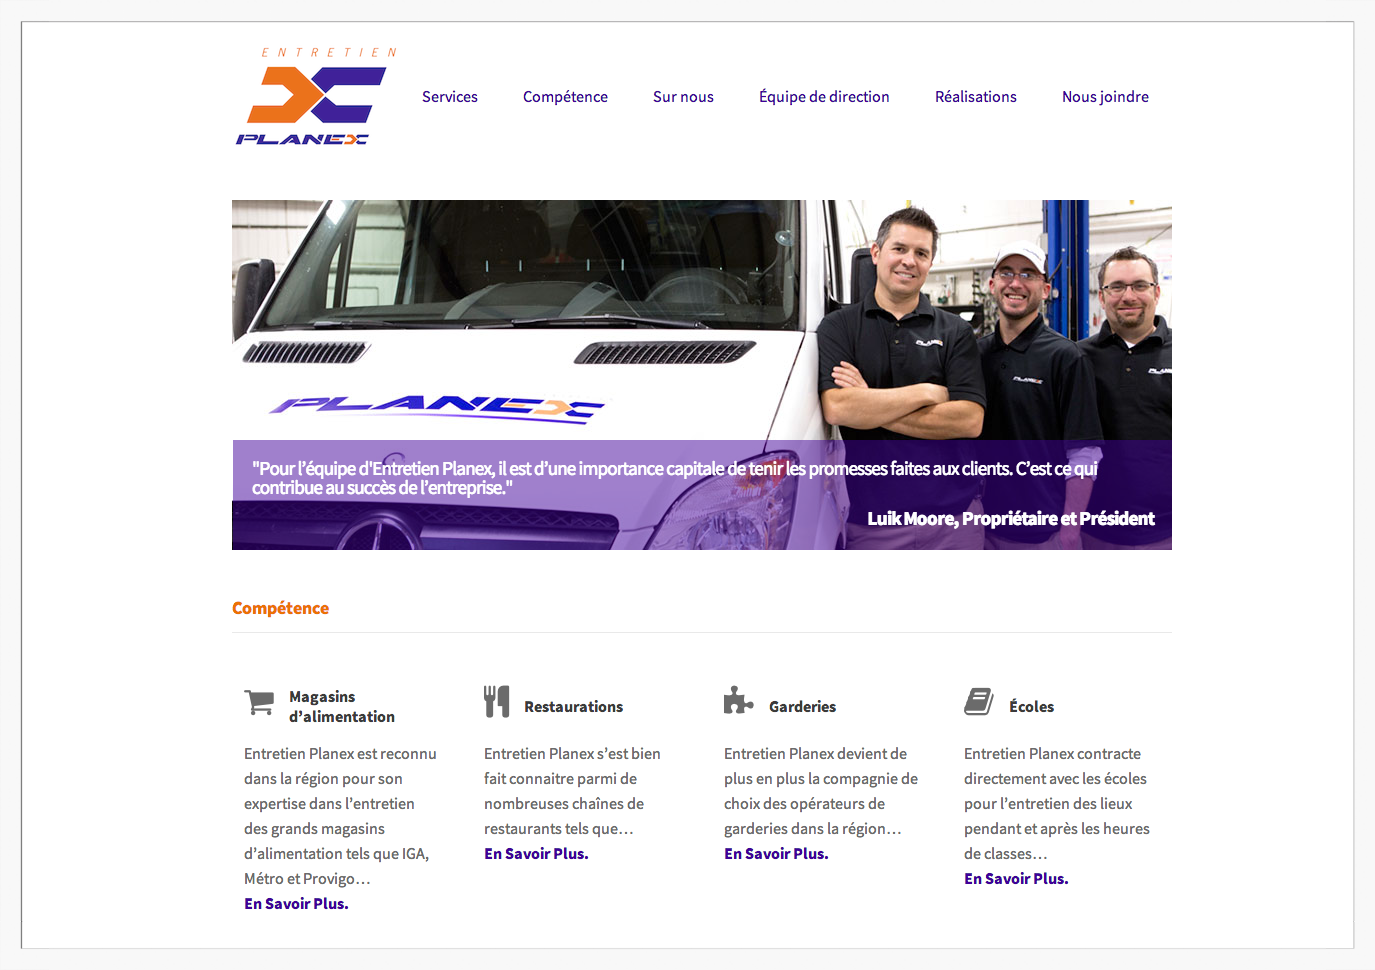 entretien planex is a quebec-based commercial cleaning company. french language site custom designed on wordpress.